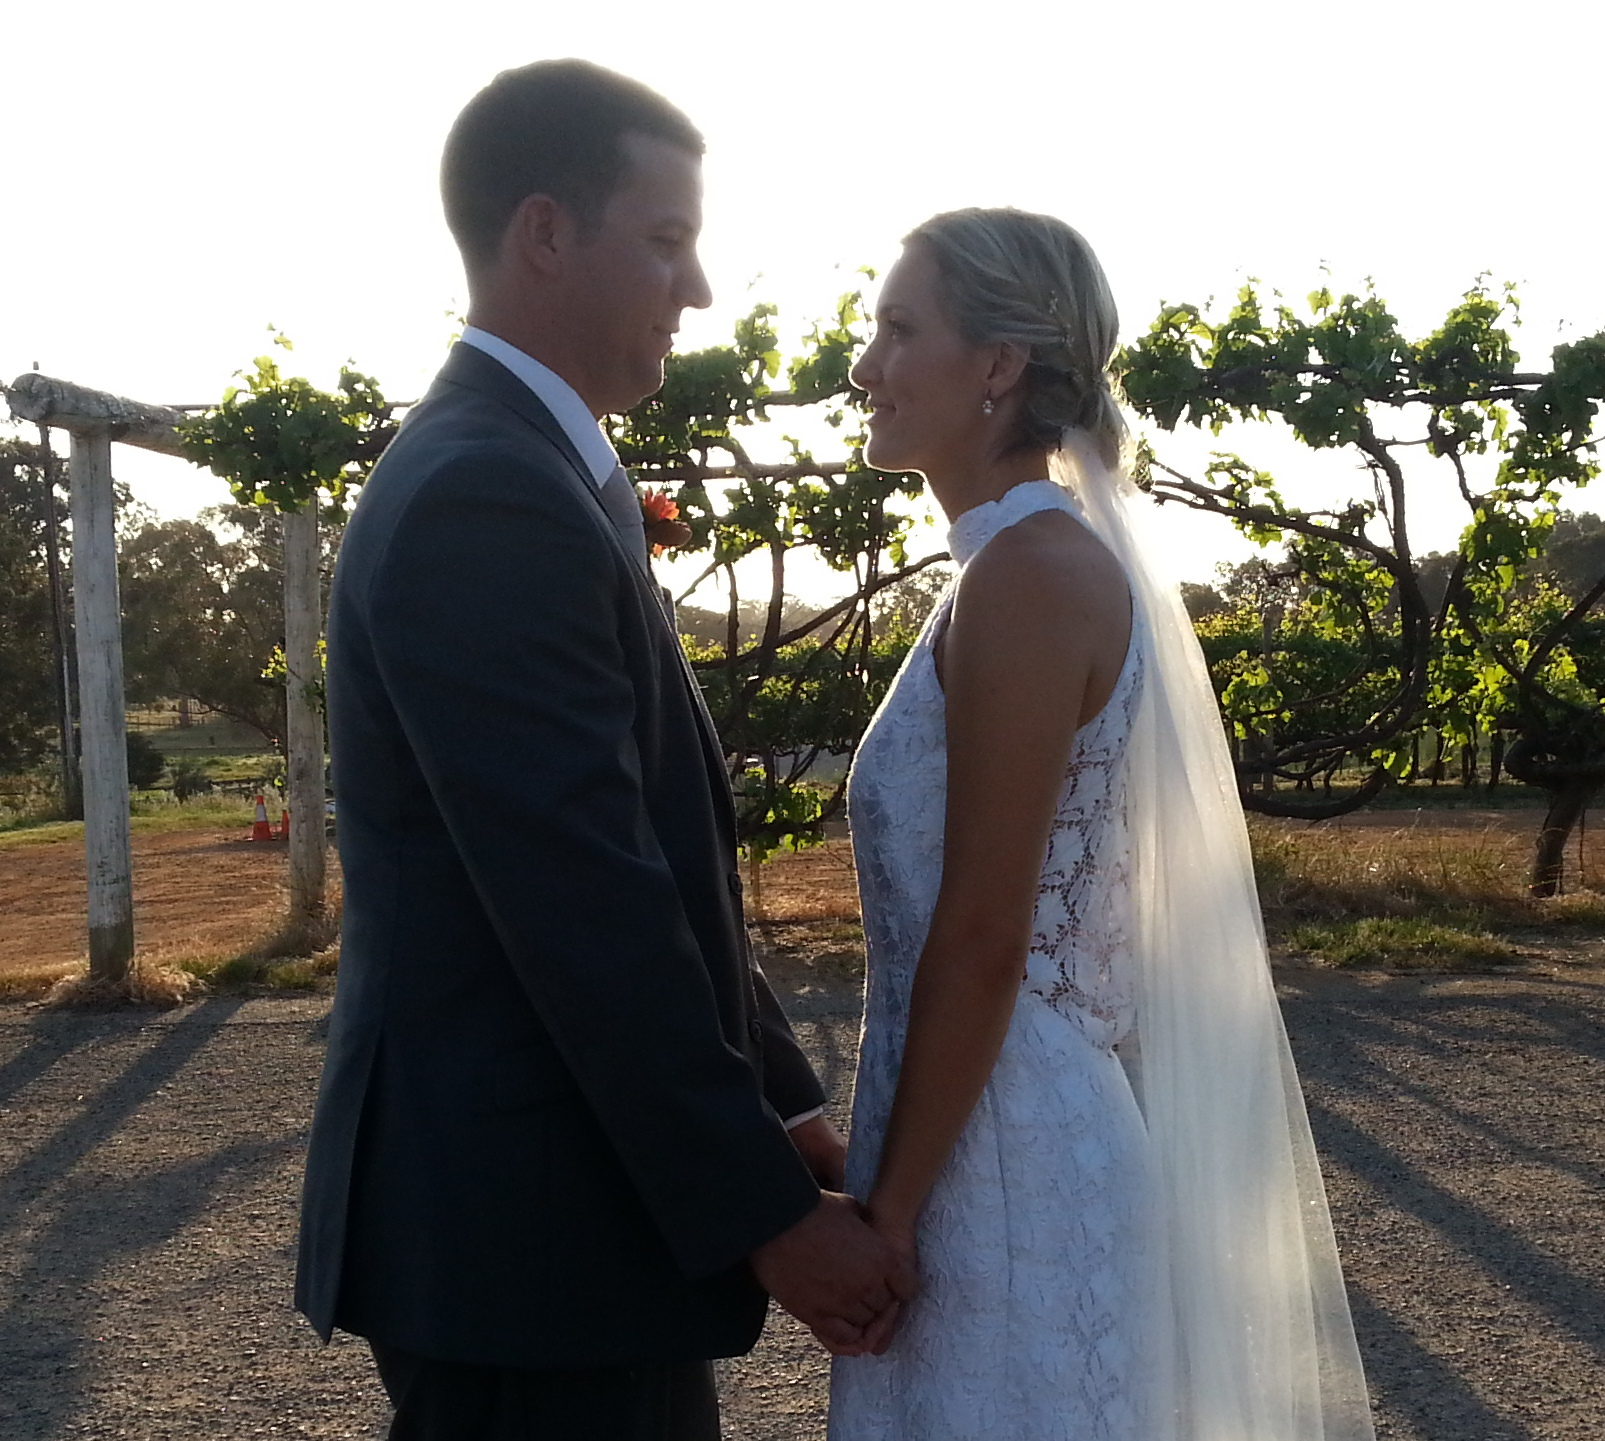 Wedding Limousine WA helped Kate and Richard celebrate their wedding day. Limo hire Perth WA also offers School ball limos WA and winery limo tours Perth WA